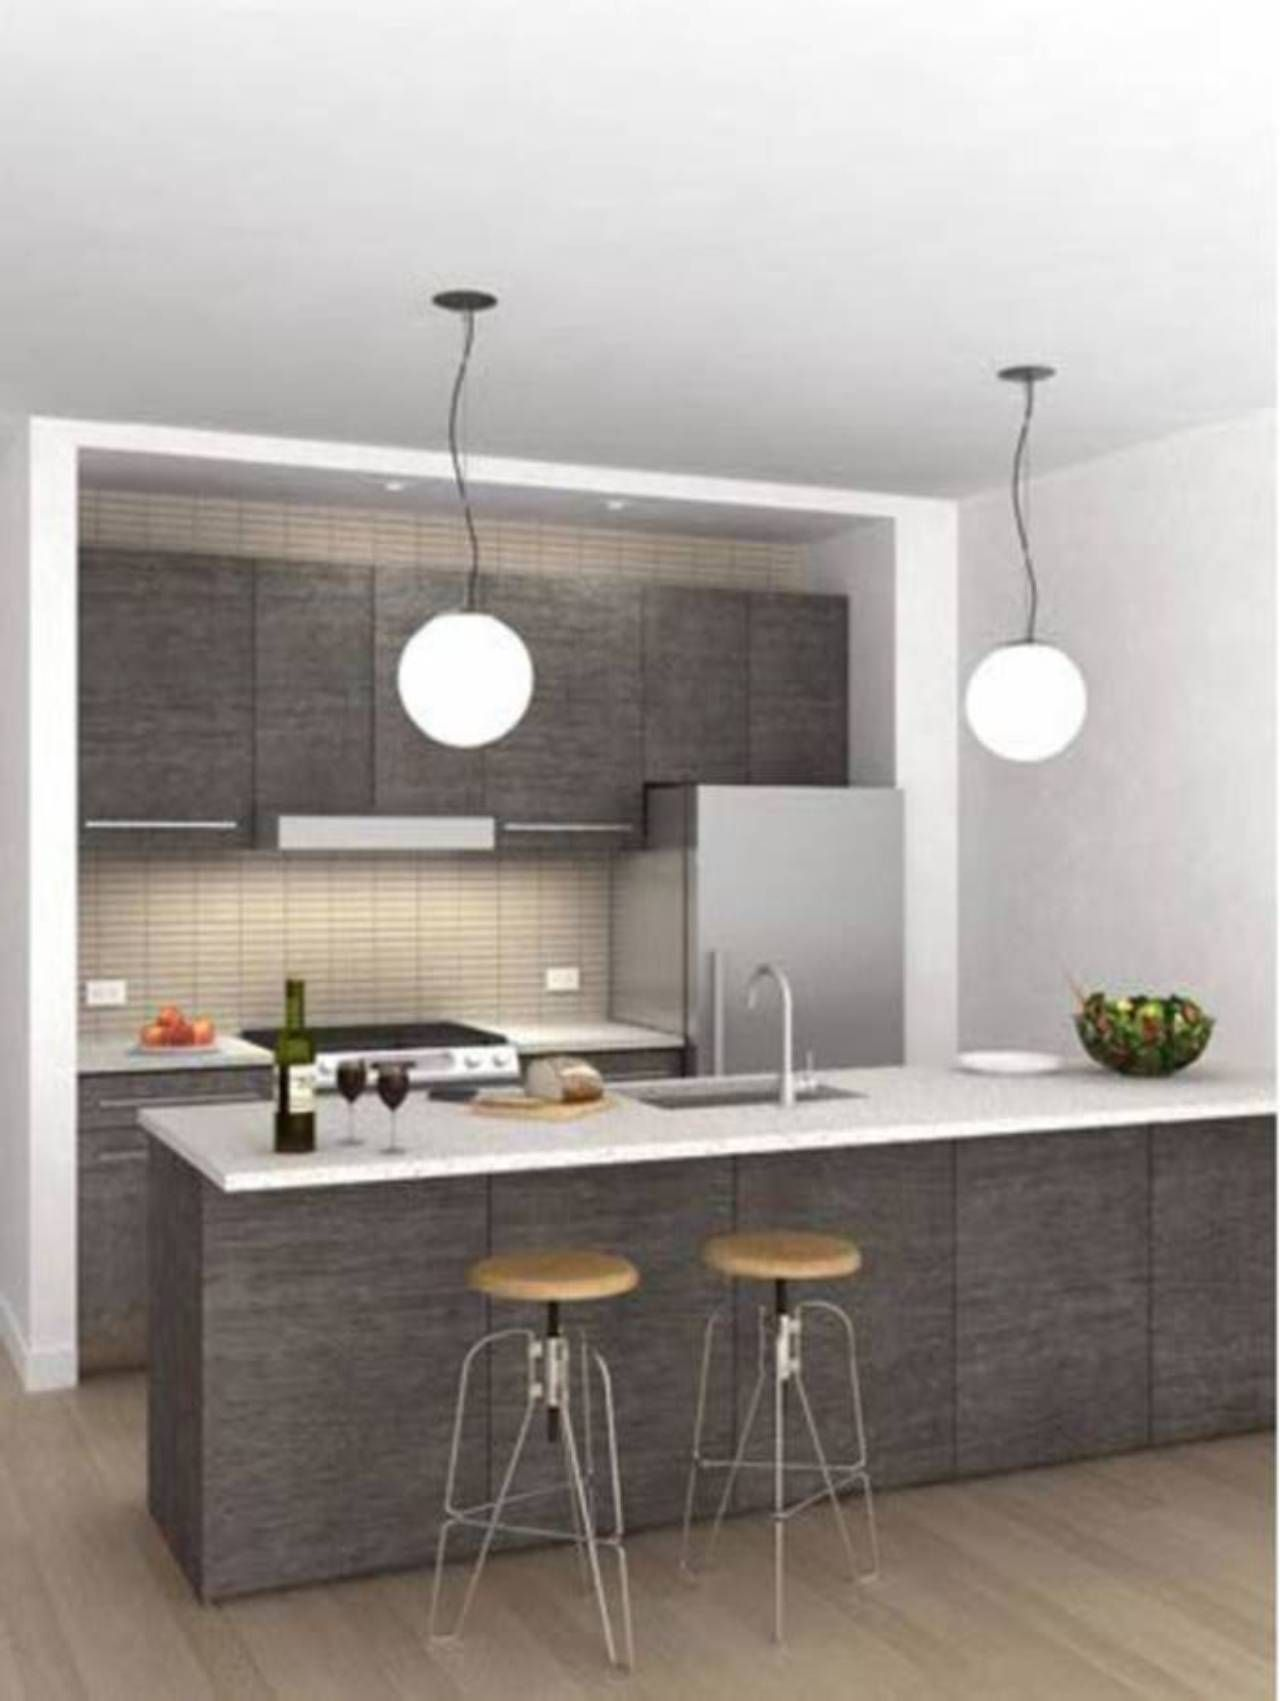 Best White Grey Small Kitchen Designs 2013 With Pendant 400 x 300